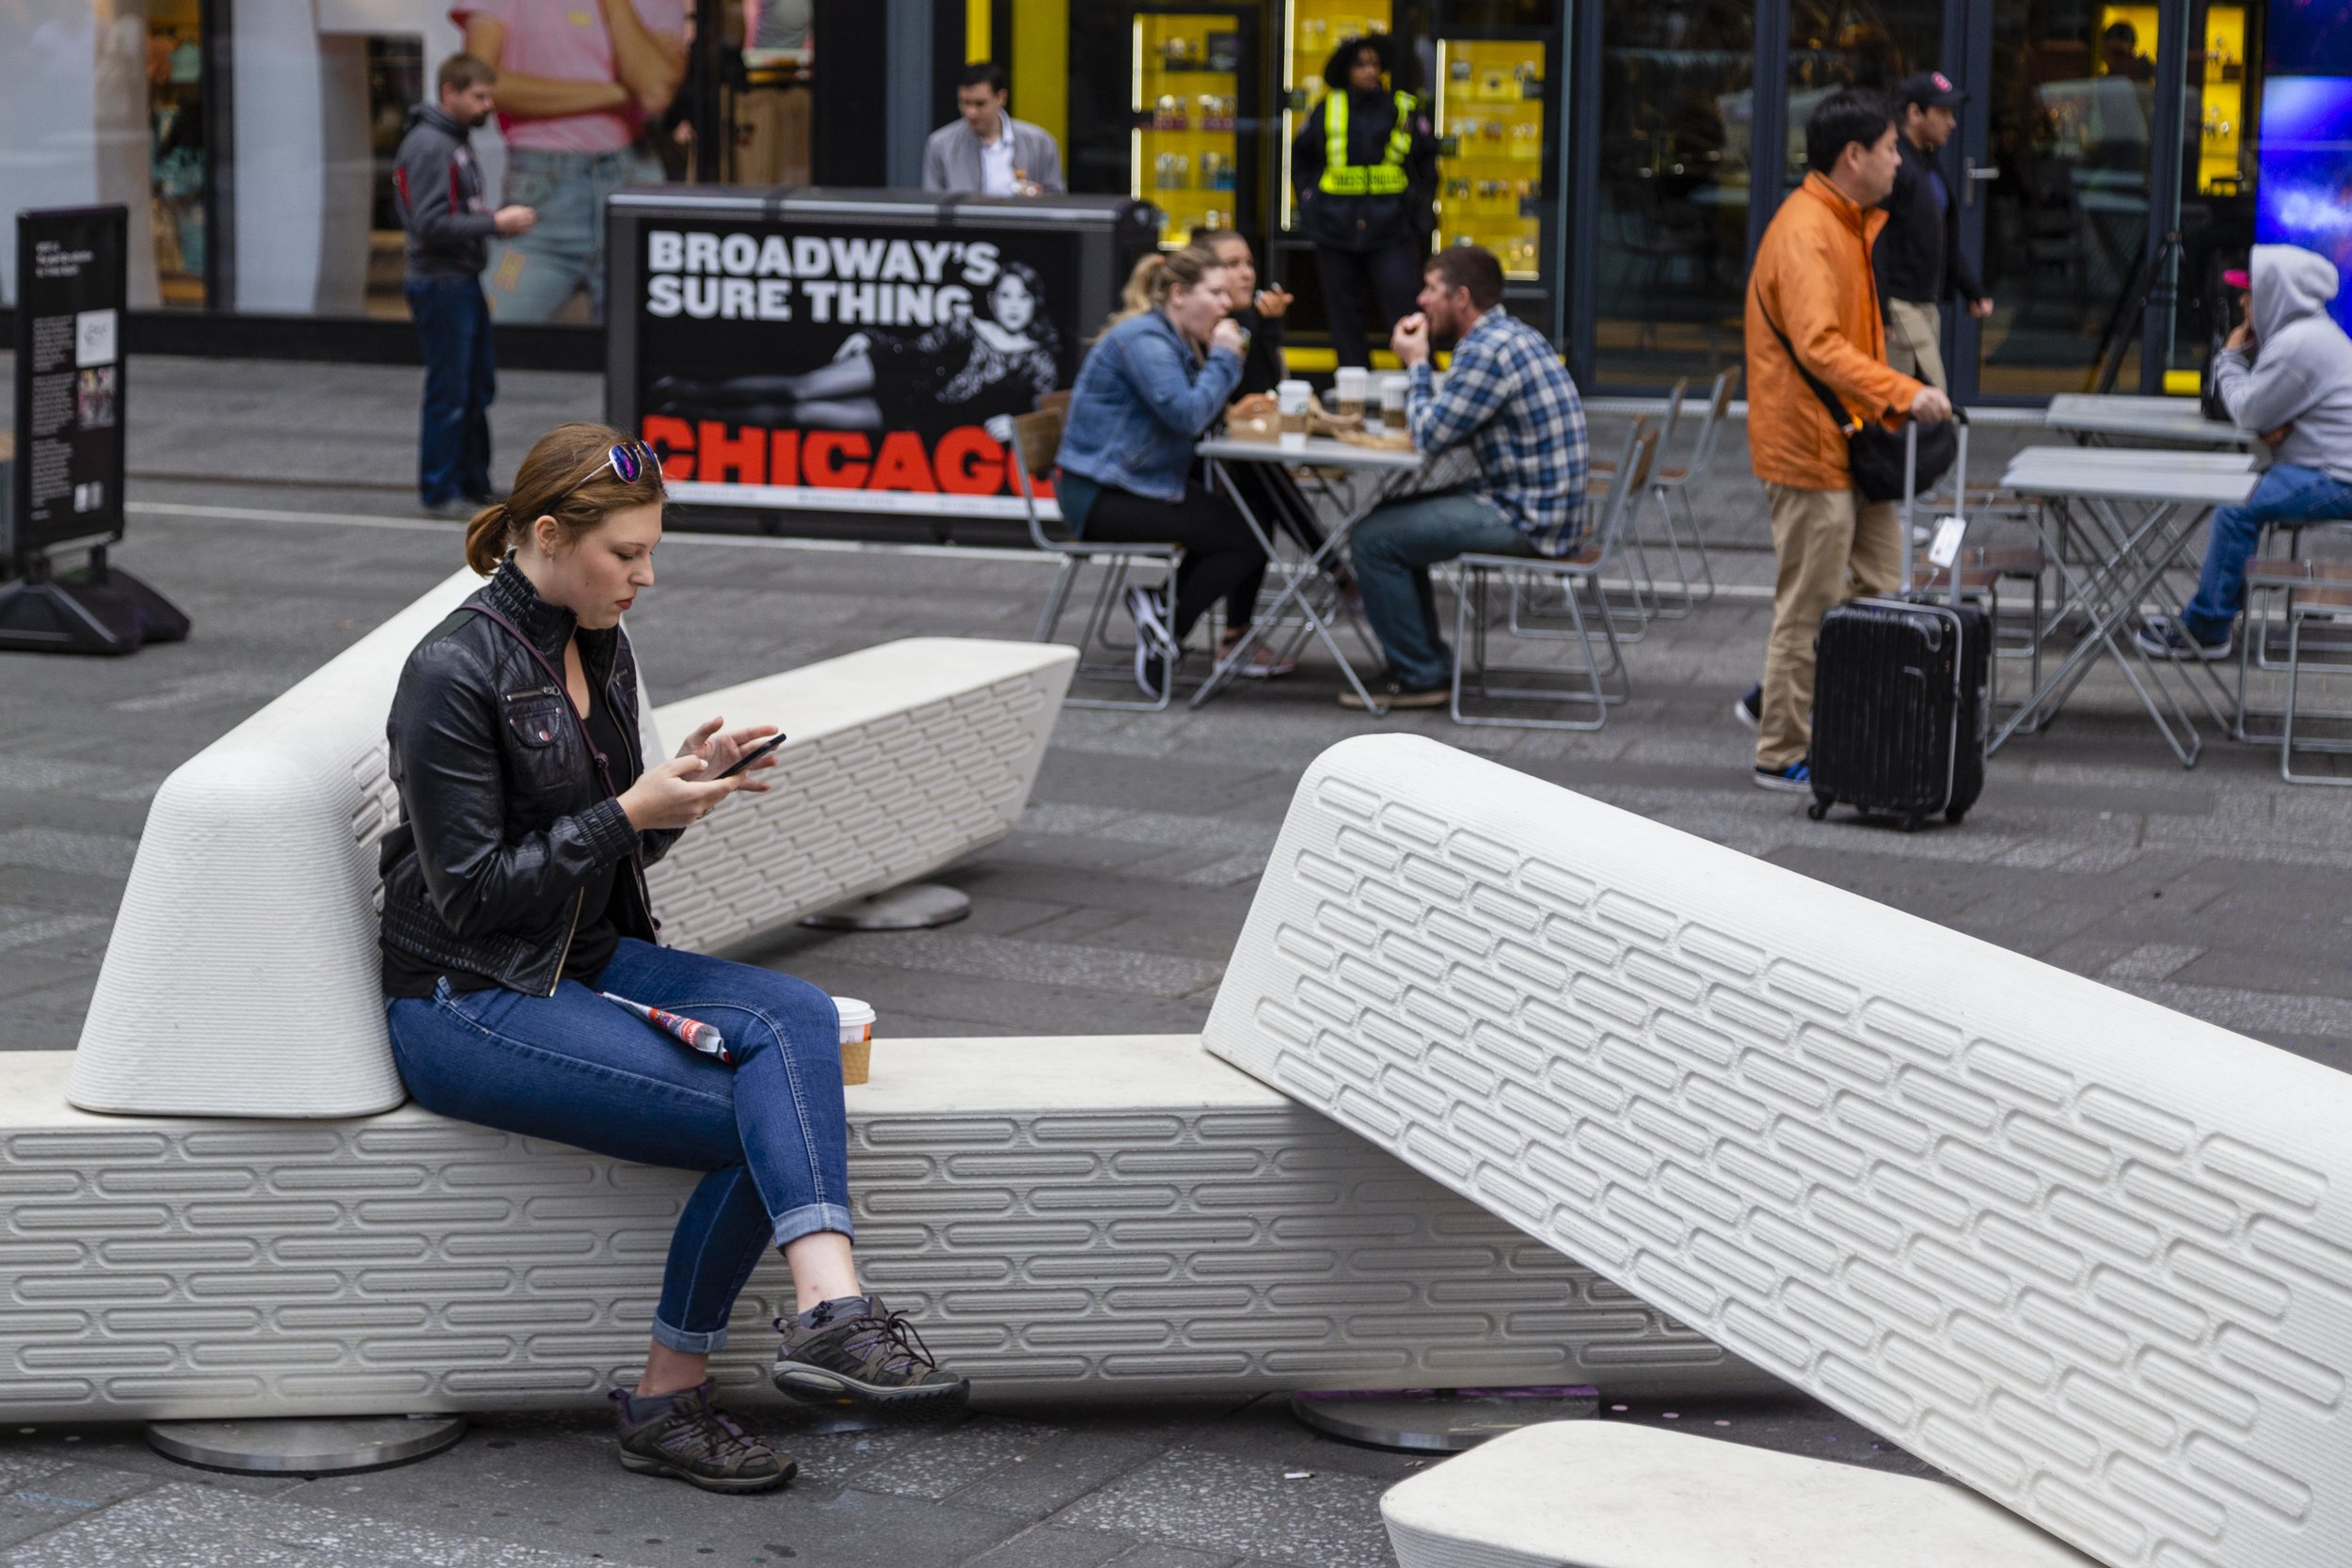 A person sits on interlocking benches in Times Square.